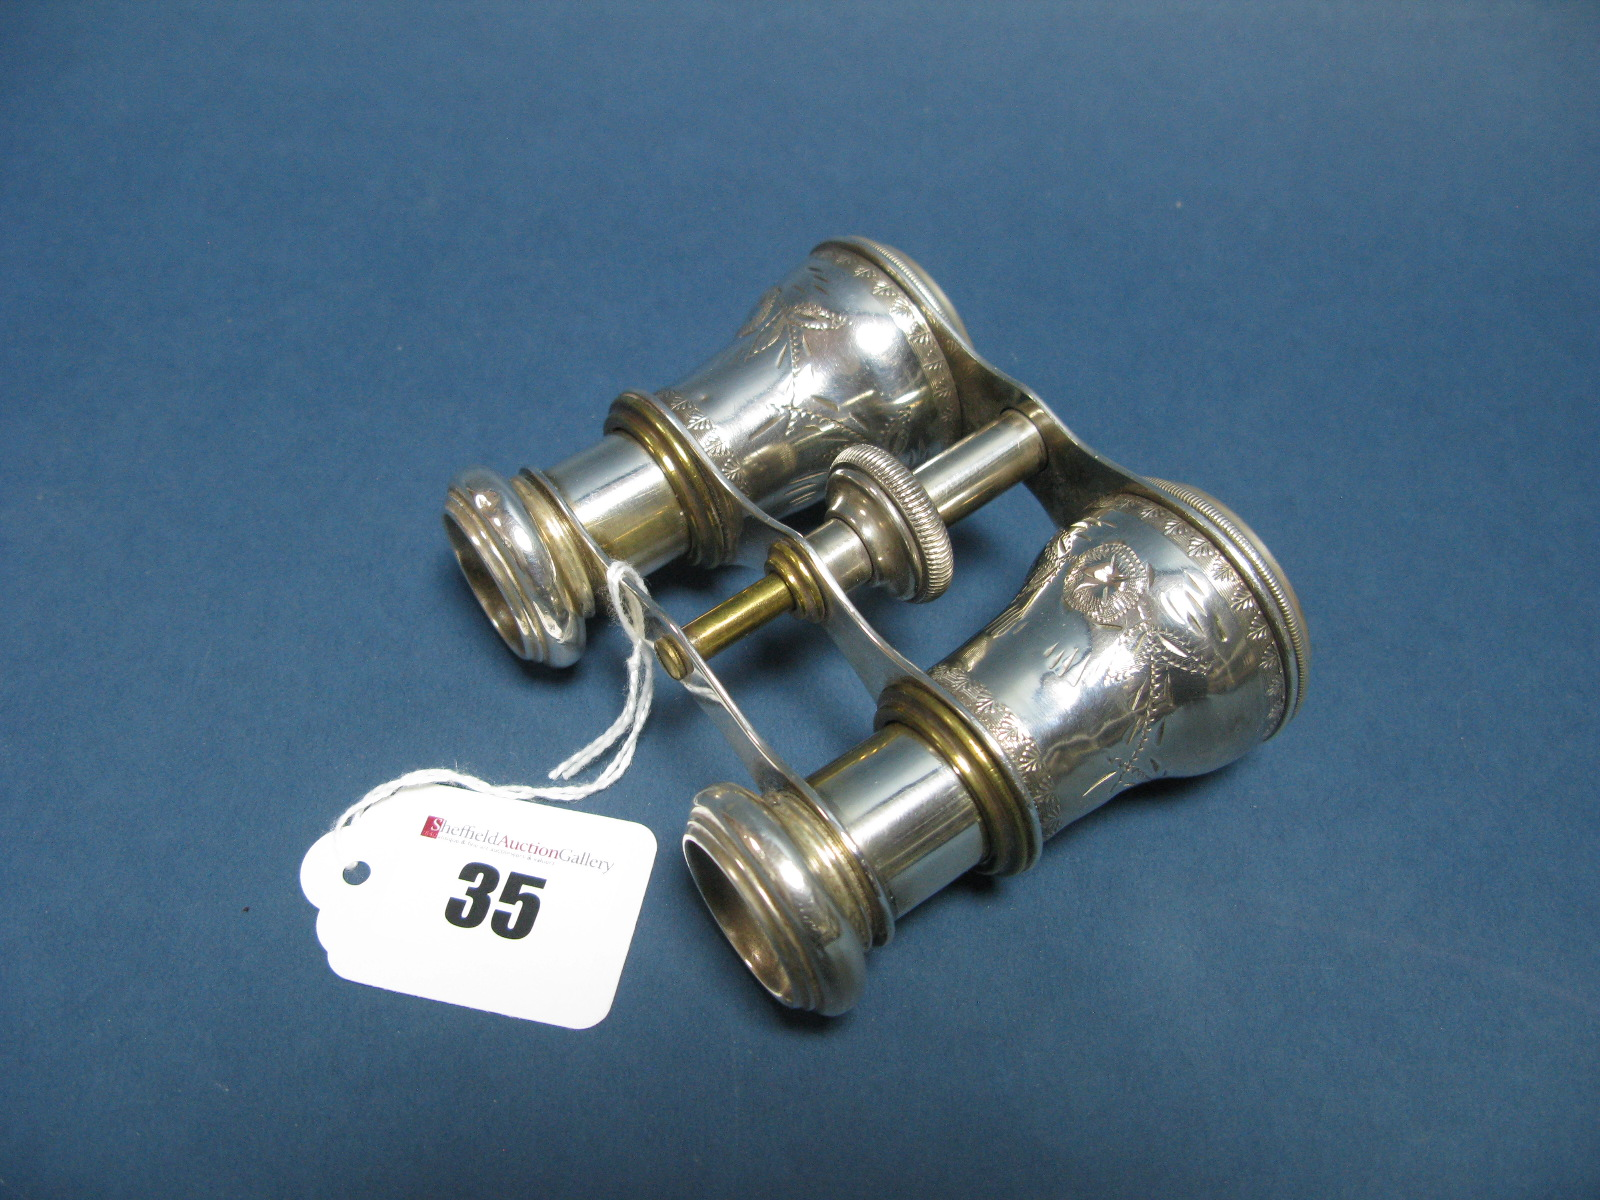 Lot 35 - A Pair of Decorative Opera Glasses, with Aesthetic style decoration (one glass lens damaged).